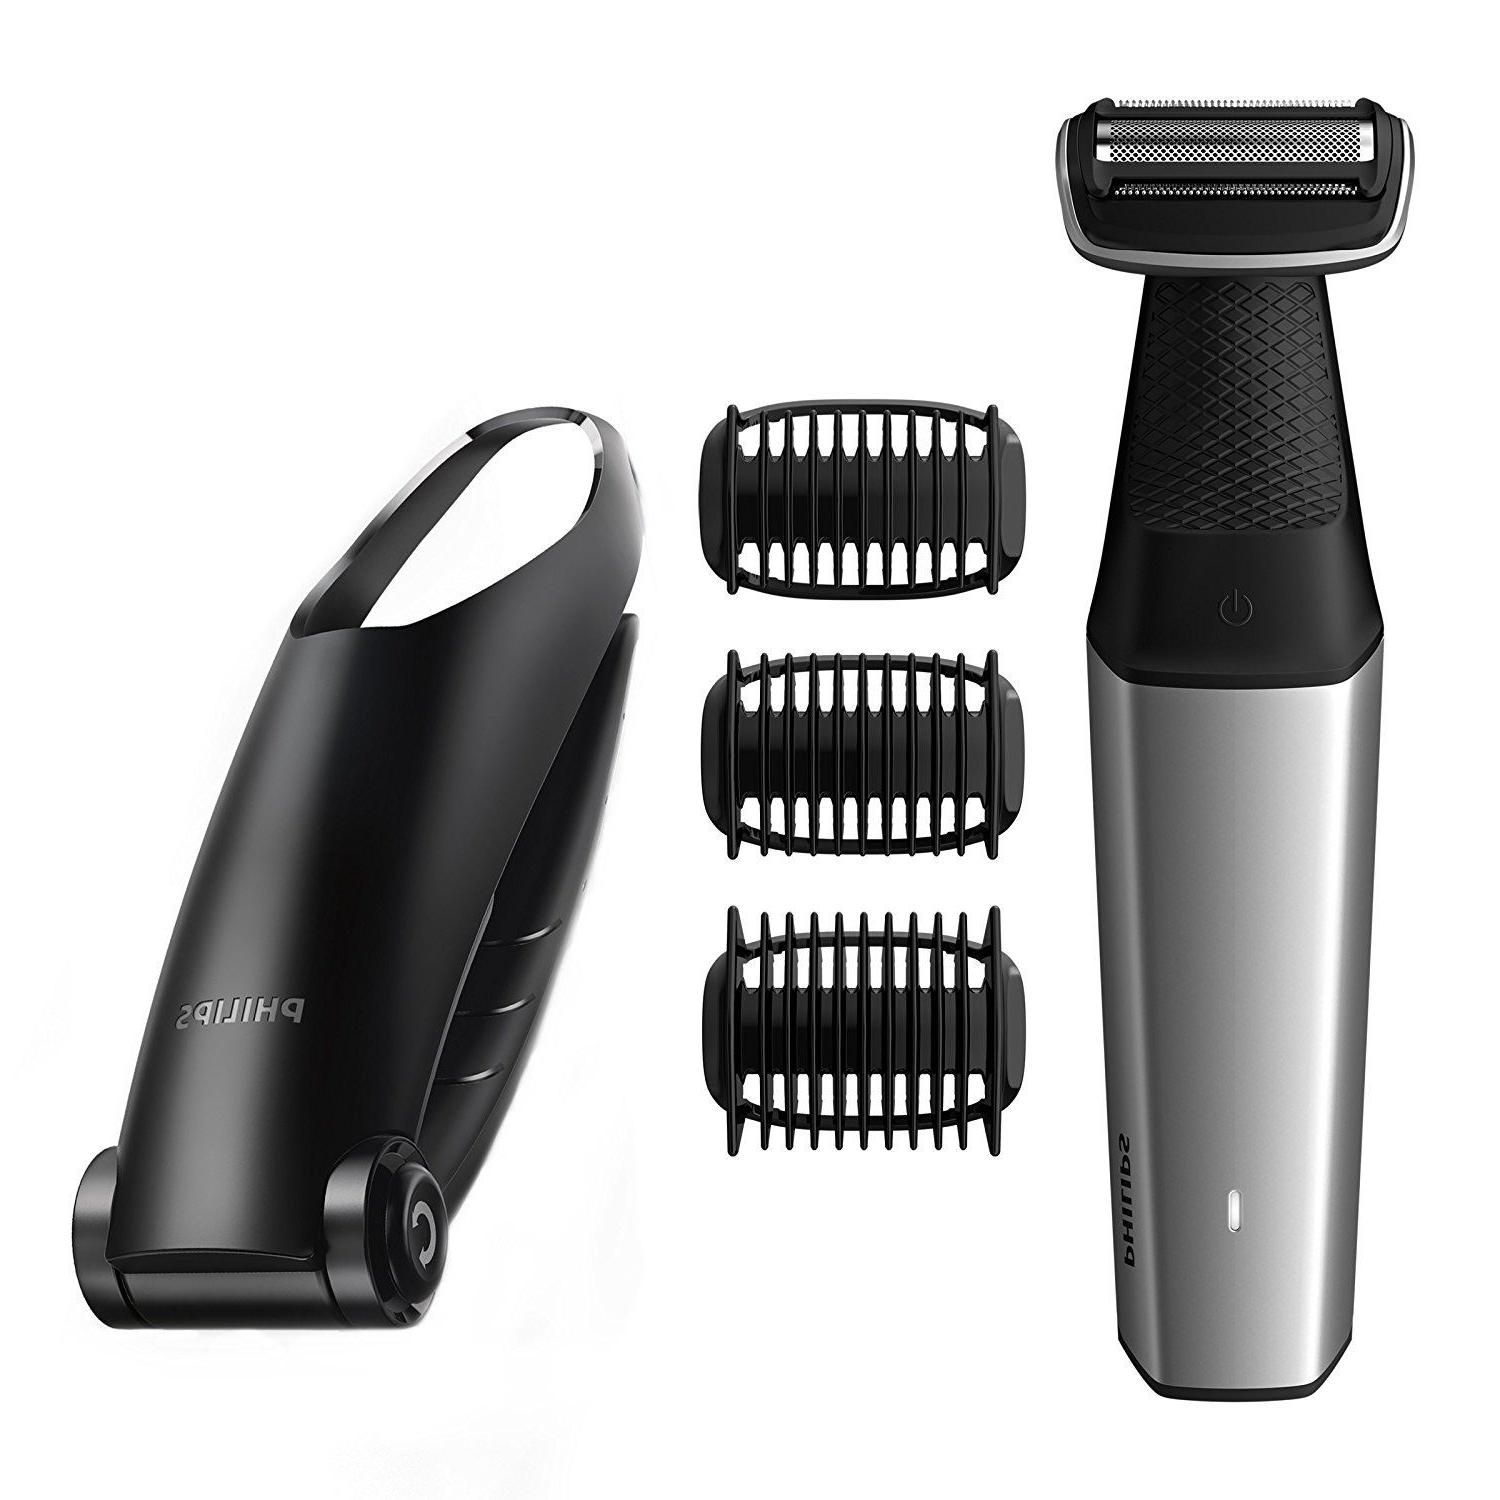 bodygroom serie 5000 shaver body with accessory